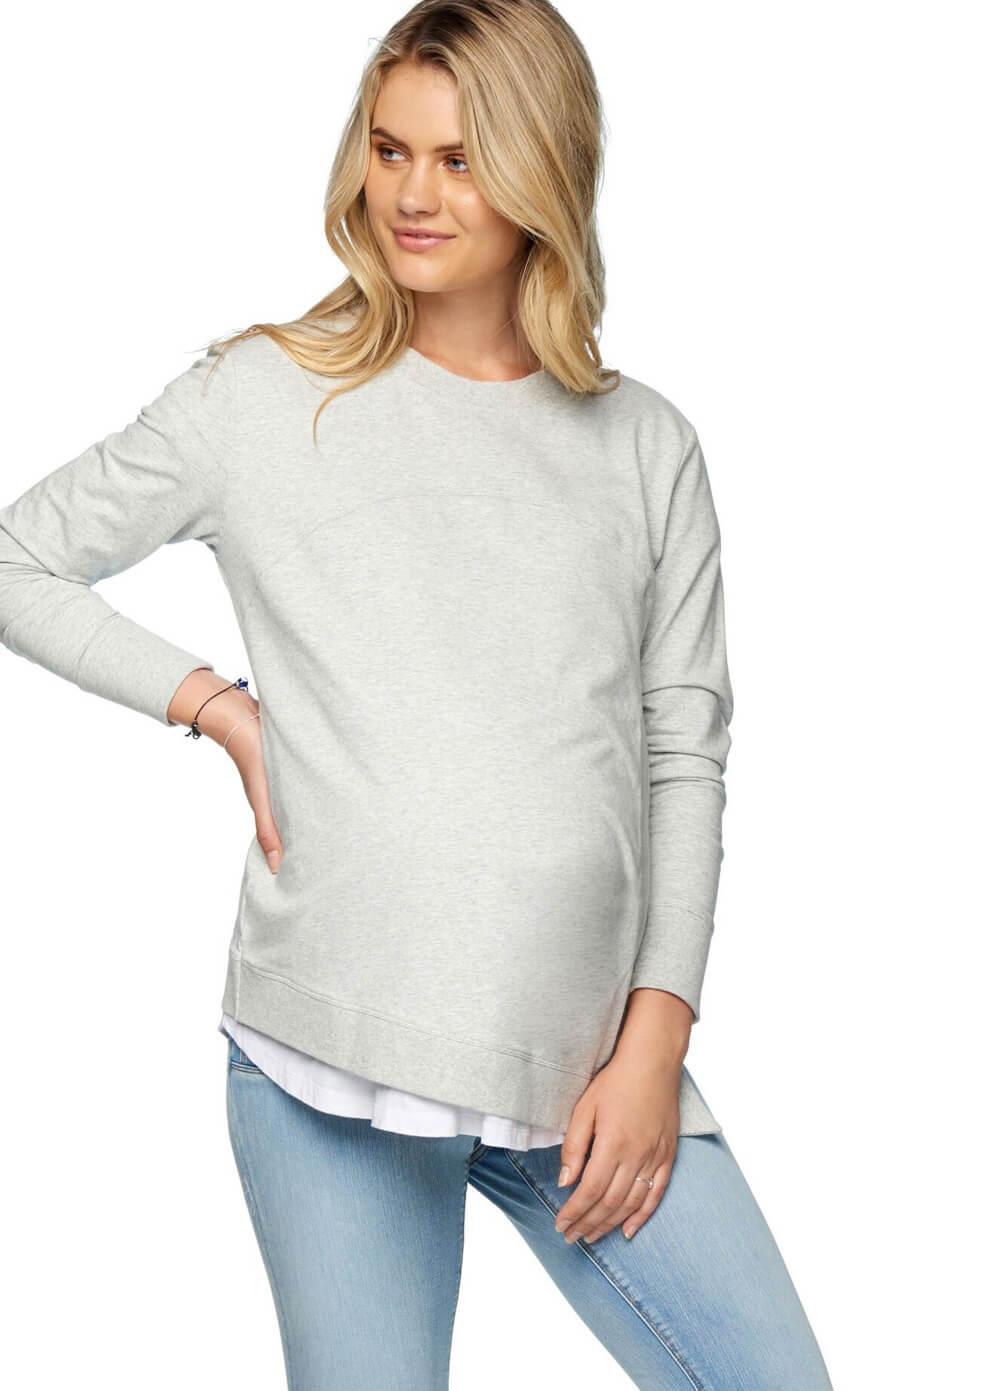 36388e0b16b1a Under Wraps Maternity Nursing Sweater by Bae The Label